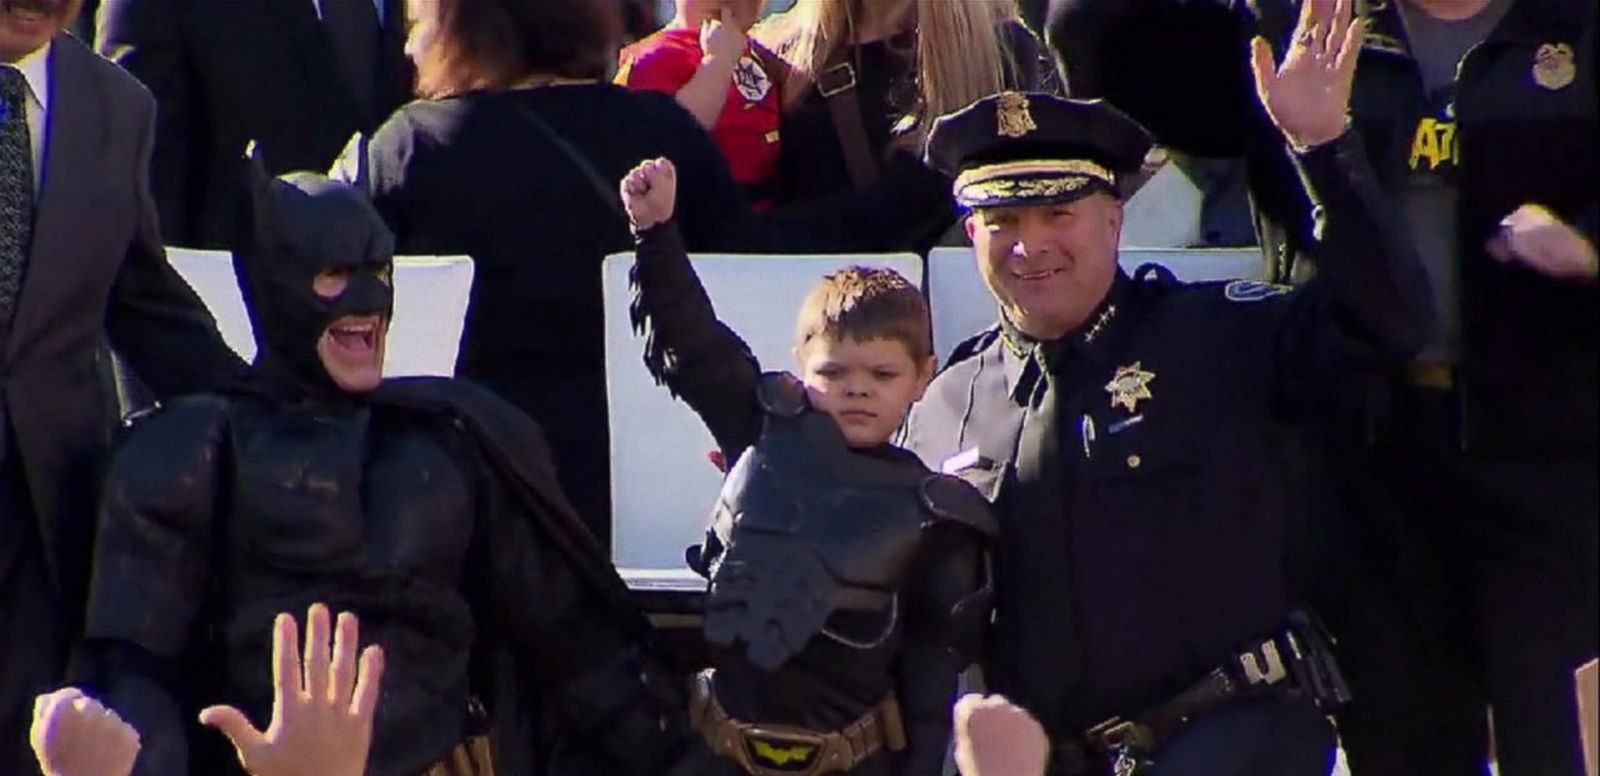 VIDEO: Batkid's Superpowers Take on San Francisco